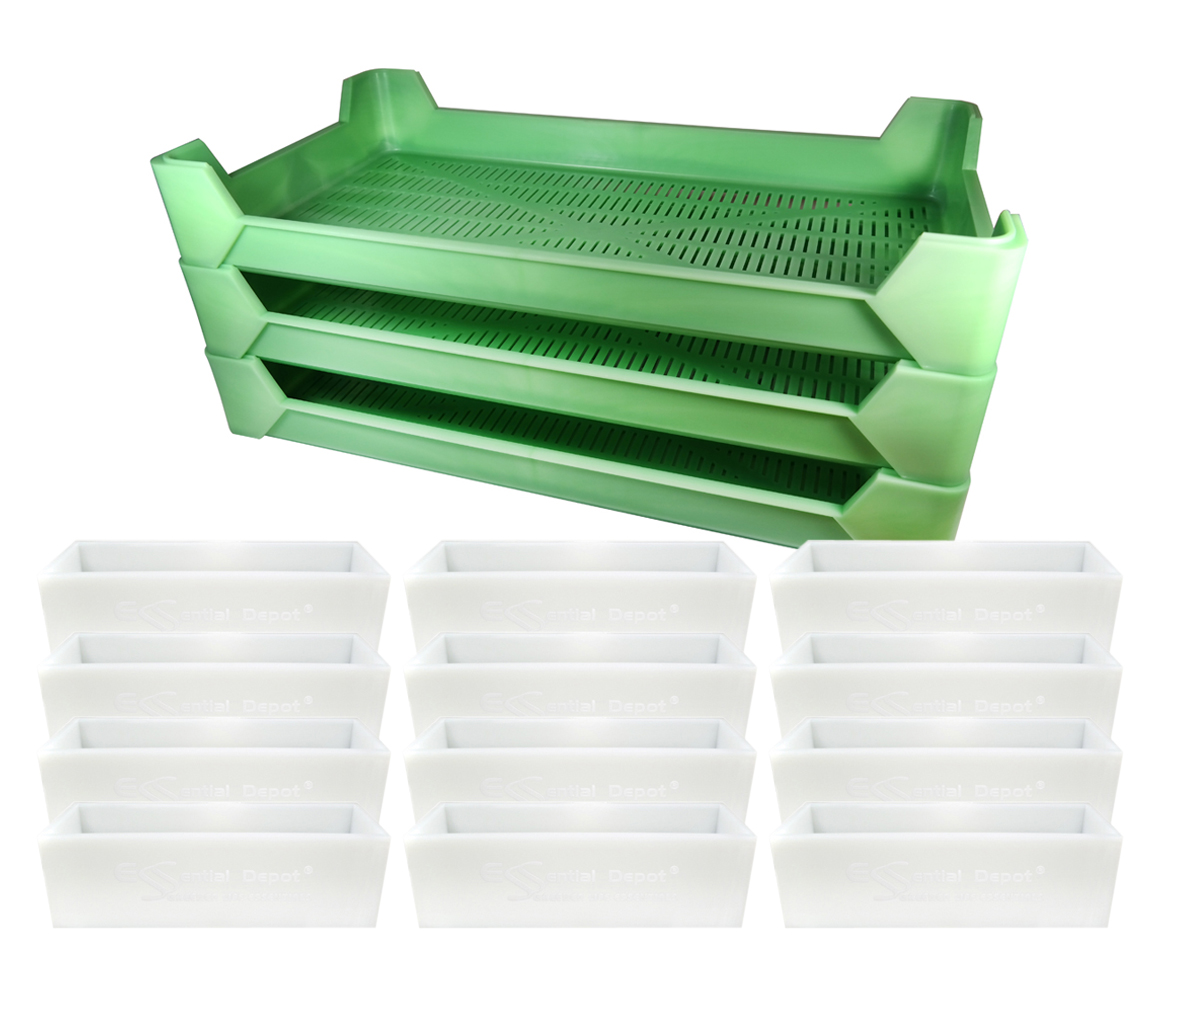 Pro Soapers Launch Kit 3 - 3 Drying Trays + 12 Natural Molds